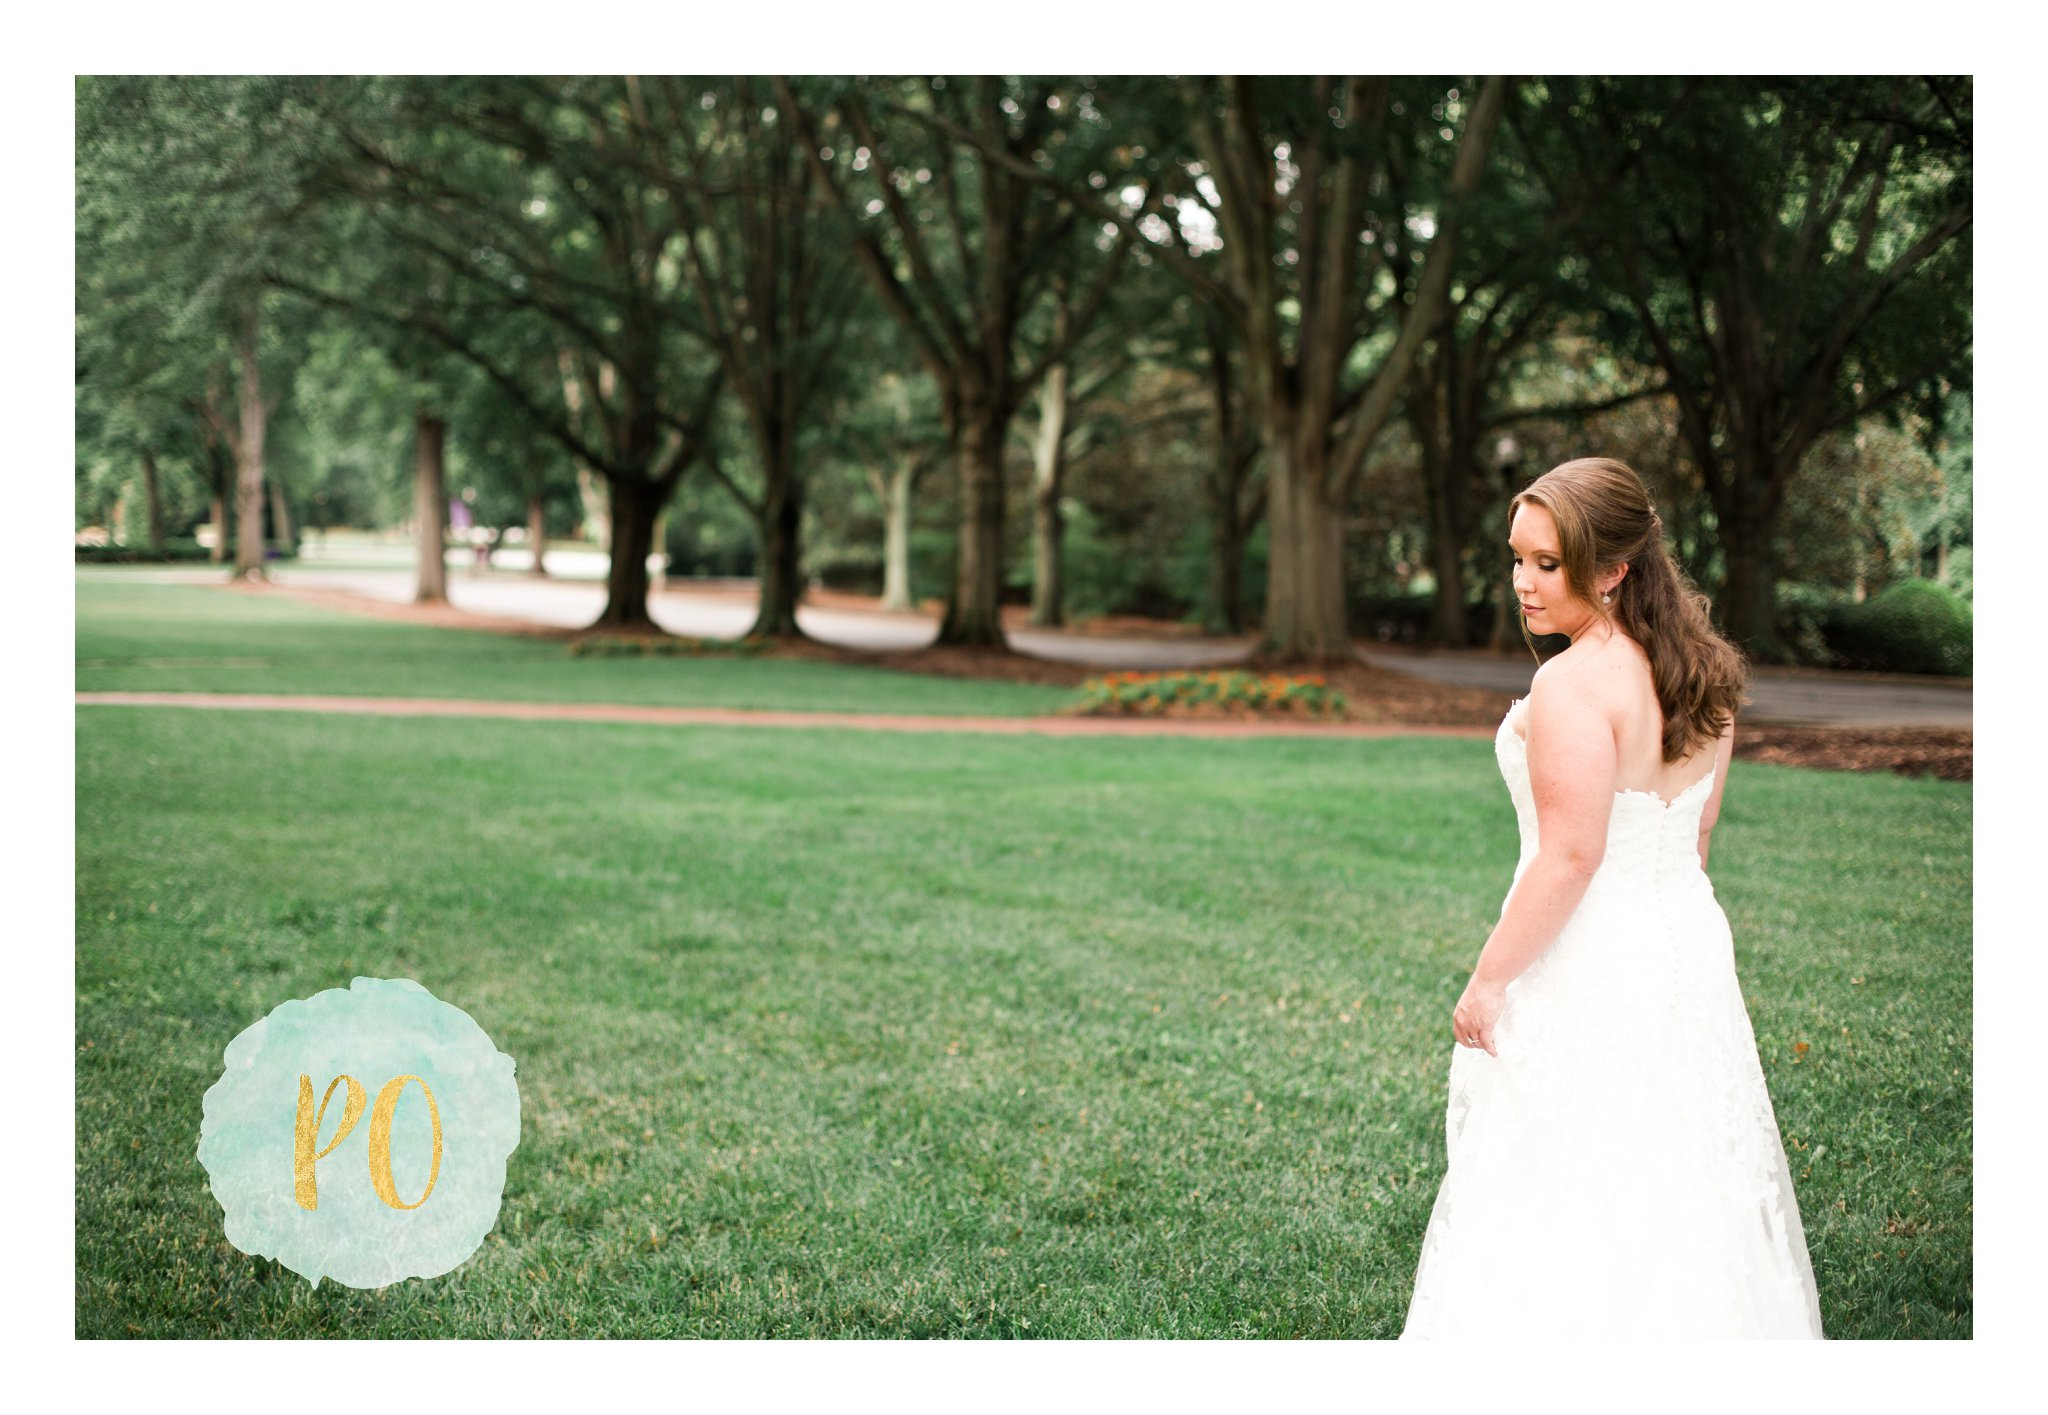 furman-bridal-portrait-greenvile-sc-photos_0001.jpg